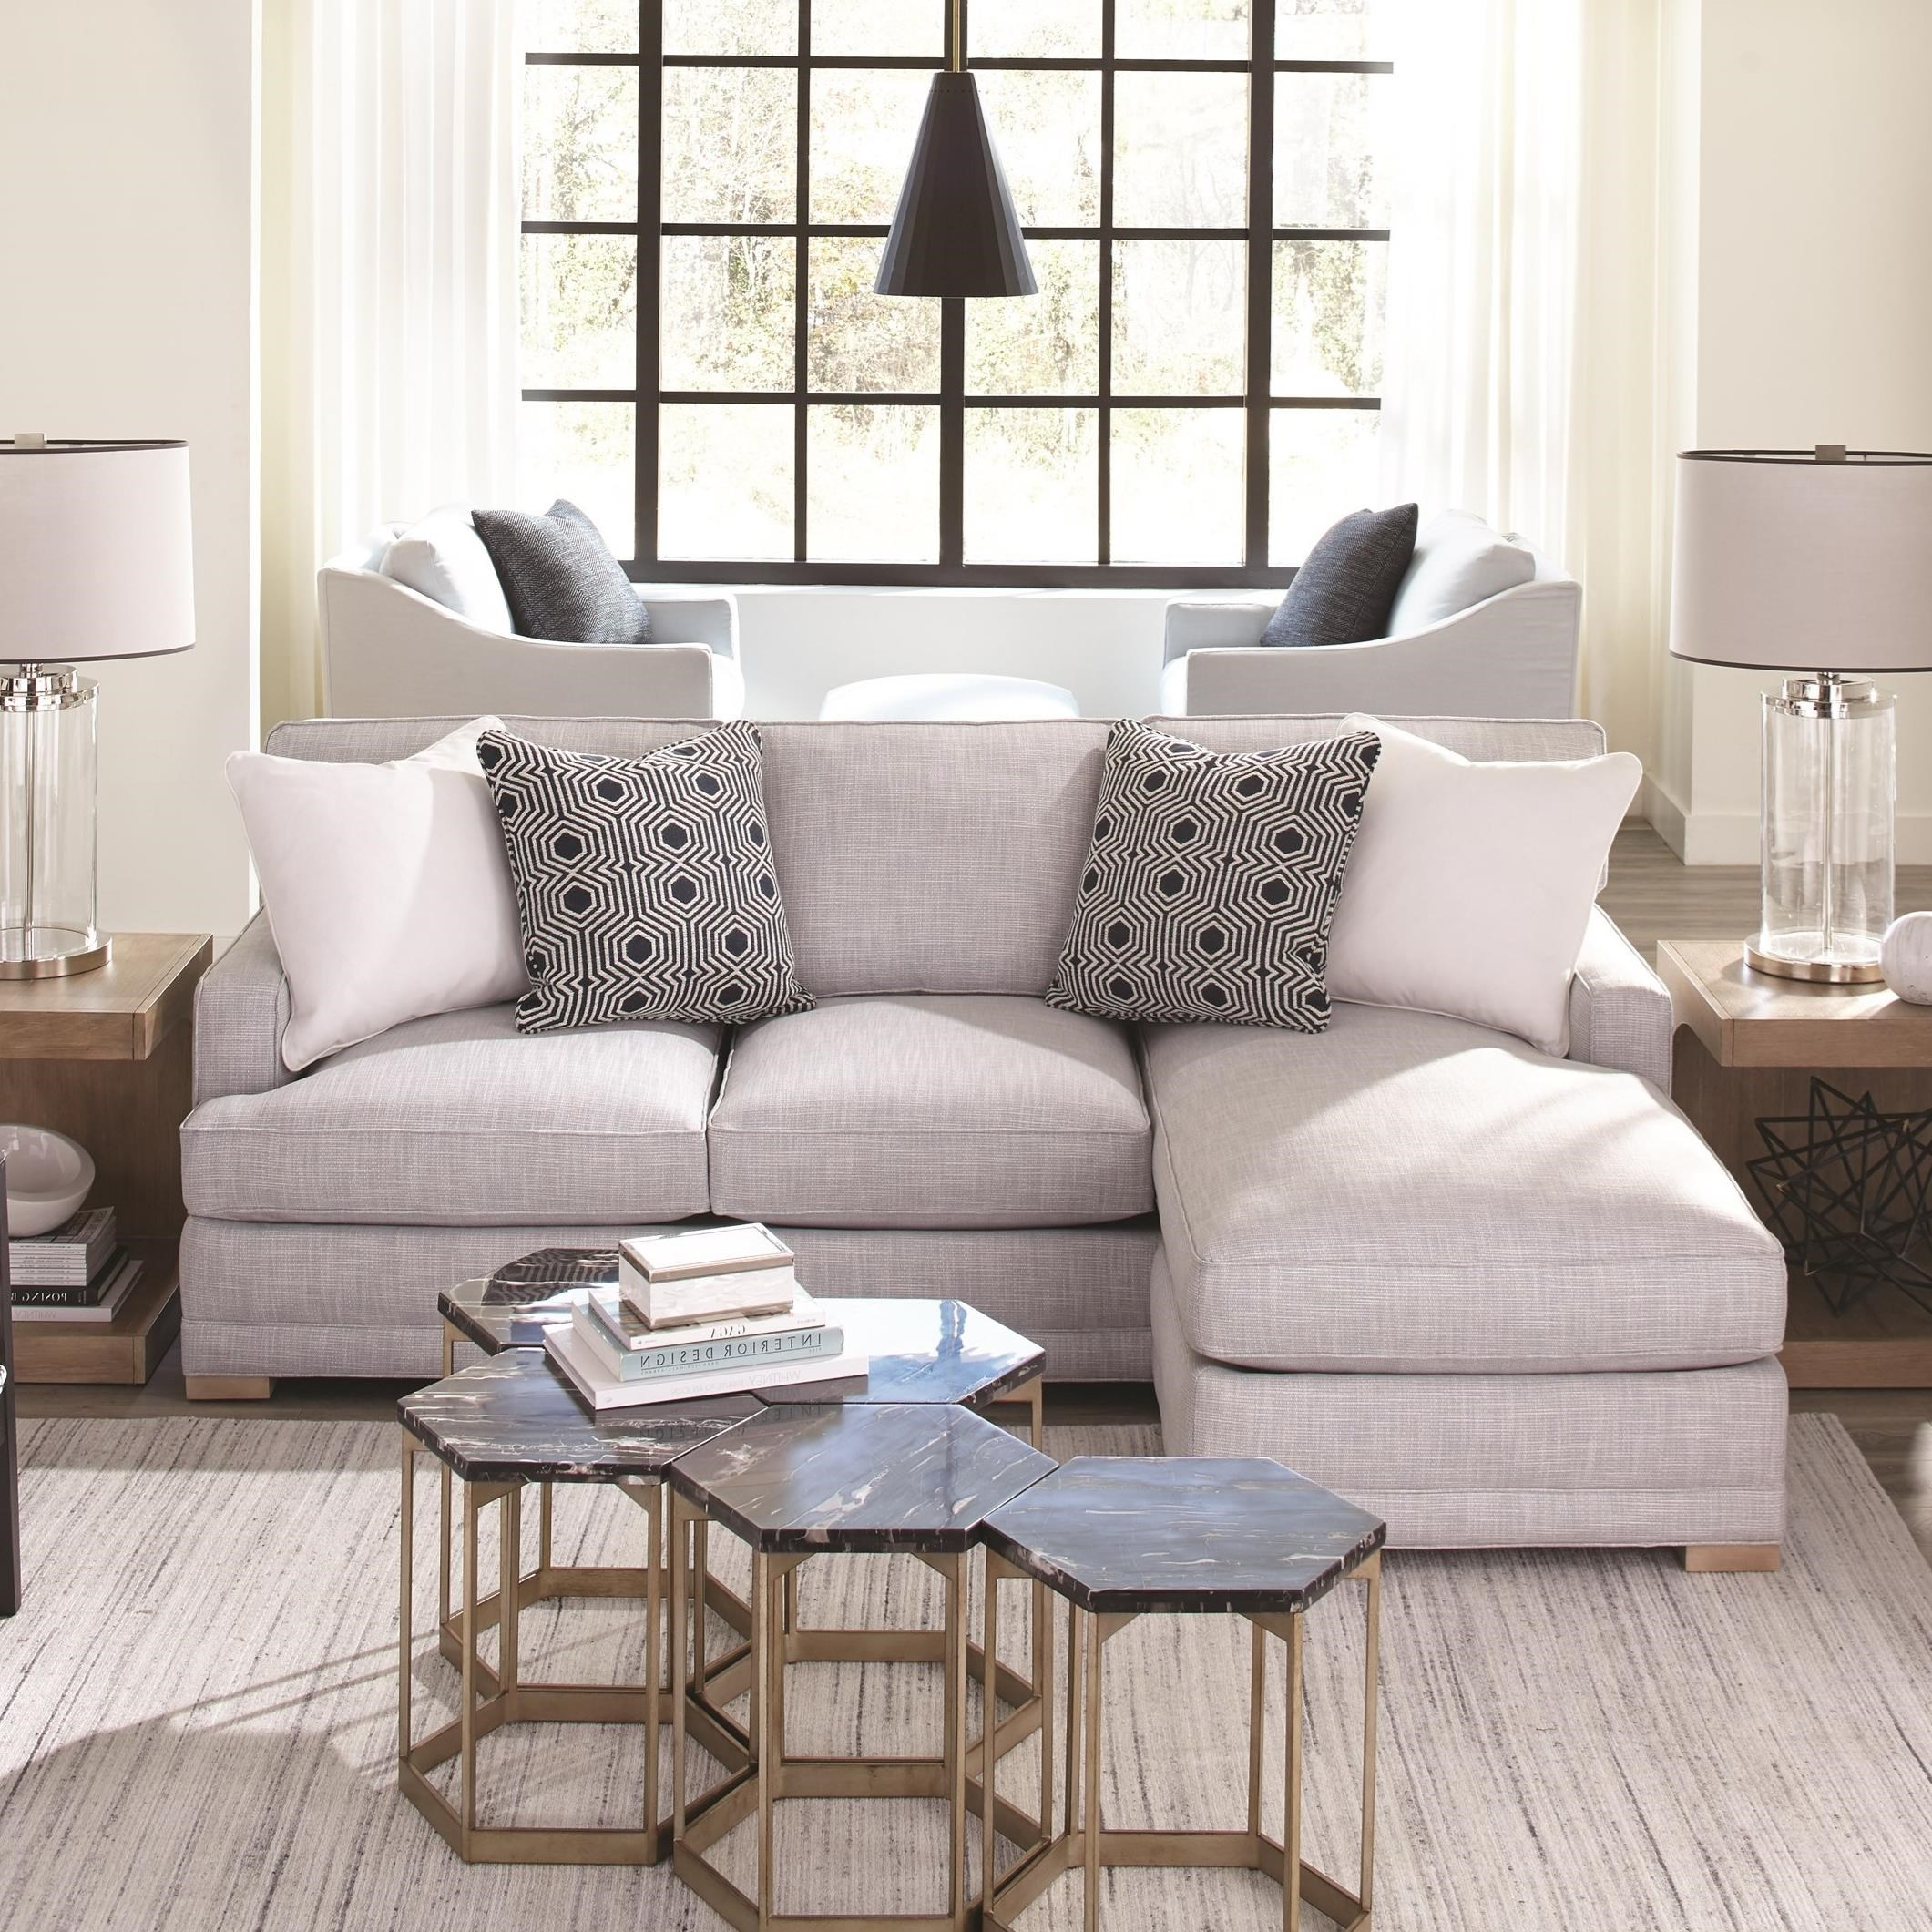 Grayson 2-Piece Sectional with LSE Chaise by Rowe at Baer's Furniture